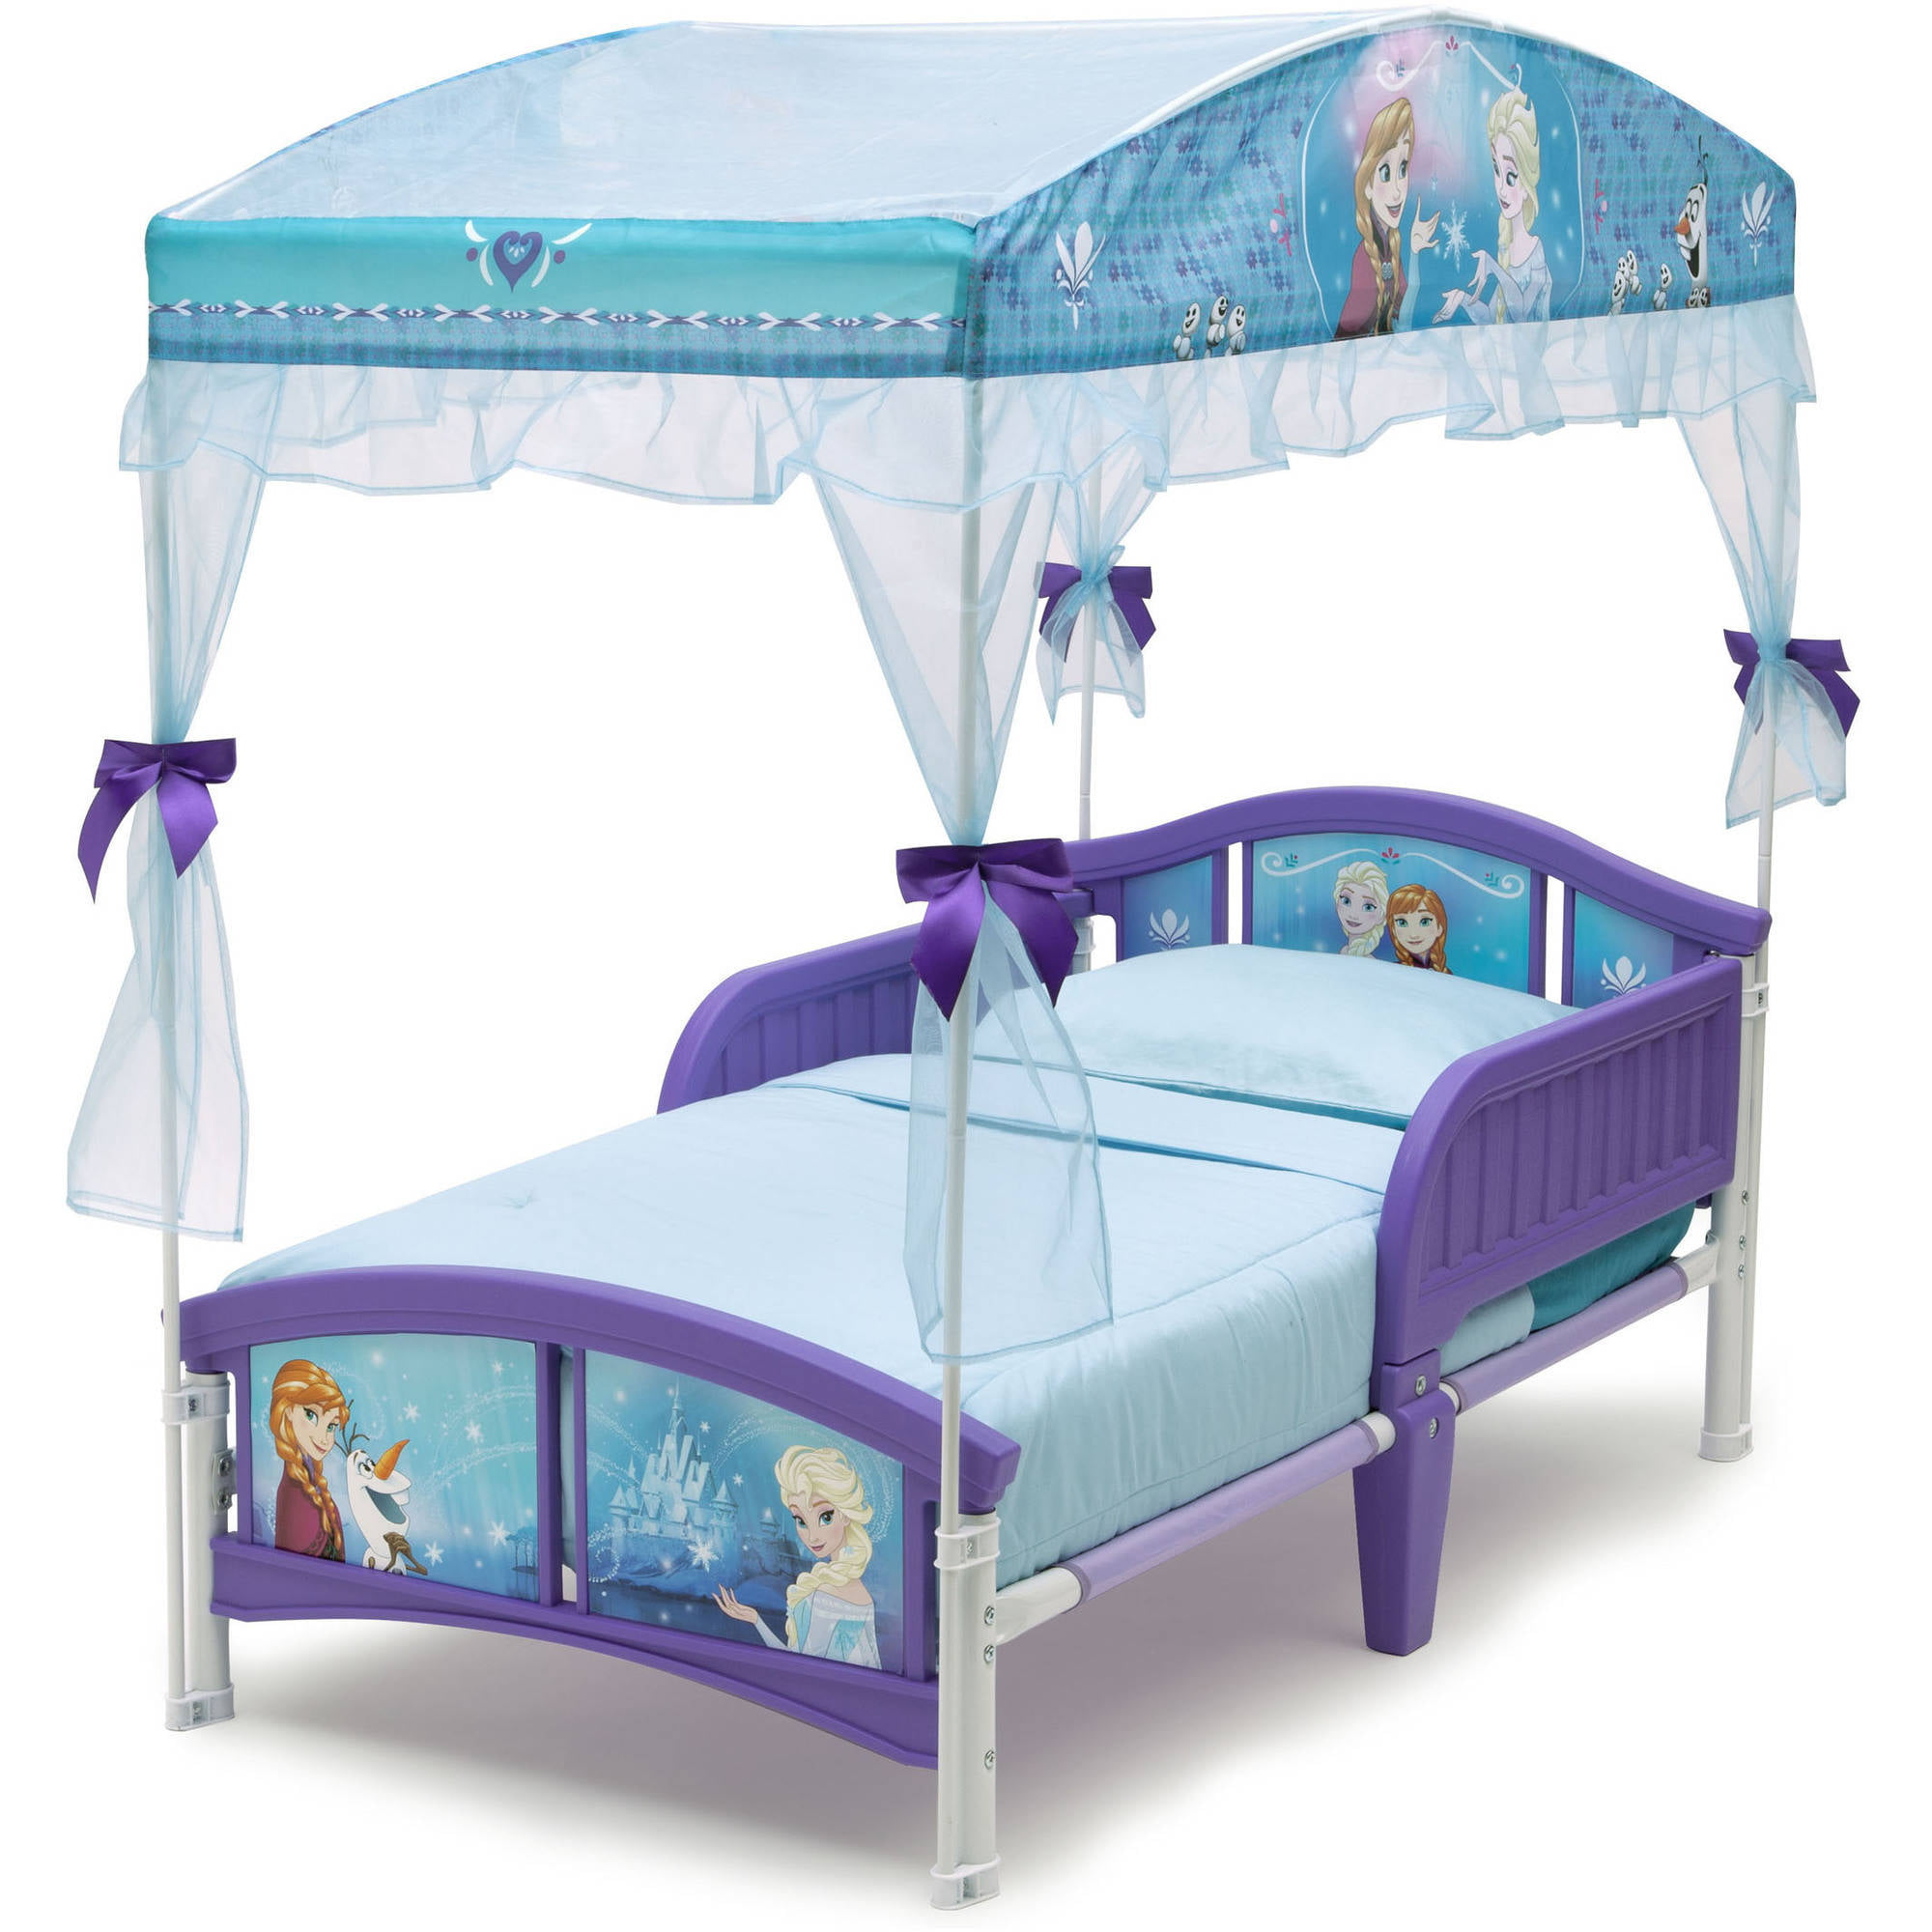 Delta Children Disney Frozen Plastic Toddler Canopy Bed Purple - Walmart.com  sc 1 st  Walmart & Delta Children Disney Frozen Plastic Toddler Canopy Bed Purple ...